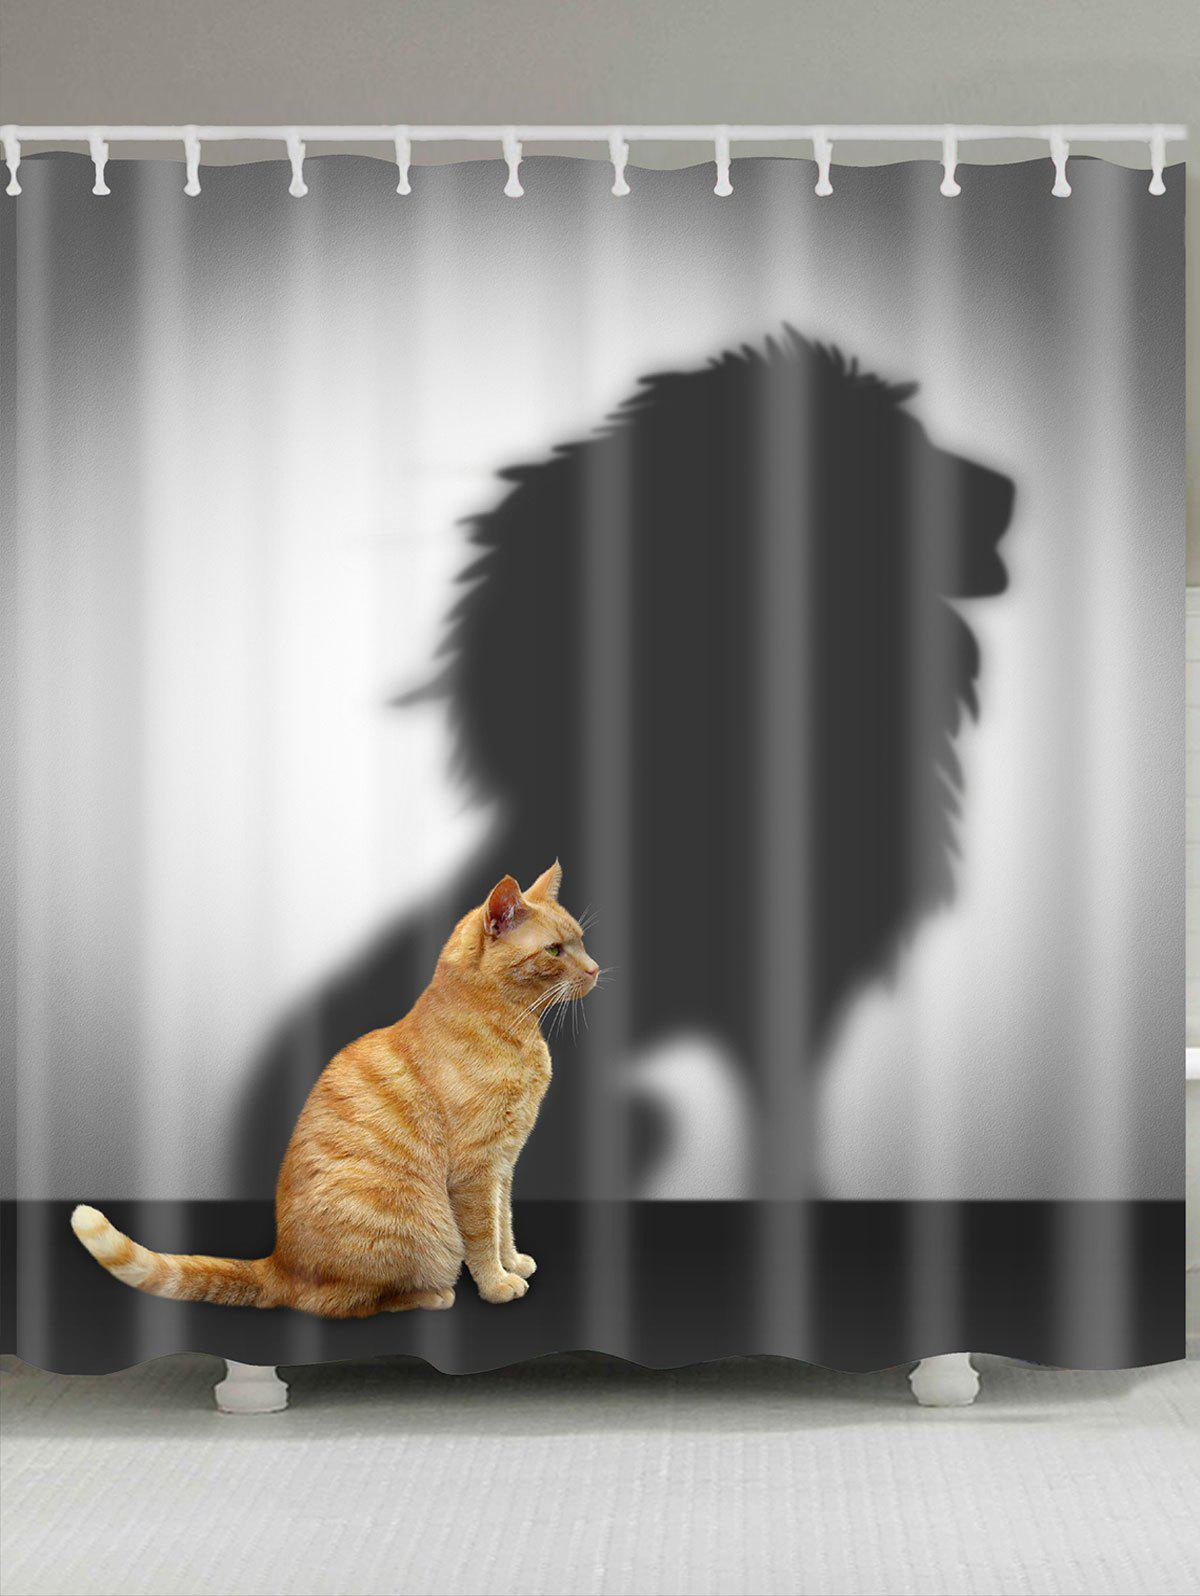 Lion Shadow And Cat Pattern Shower CurtainHOME<br><br>Size: W71 INCH * L71 INCH; Color: GRAY; Products Type: Shower Curtains; Materials: Polyester; Pattern: Animal; Style: Natural; Number of Hook Holes: W59 inch * L71 inch:10, W71 inch * L71 inch:12, W71 inch * L79 inch:12; Package Contents: 1 x Shower Curtain 1 x Hooks (Set);